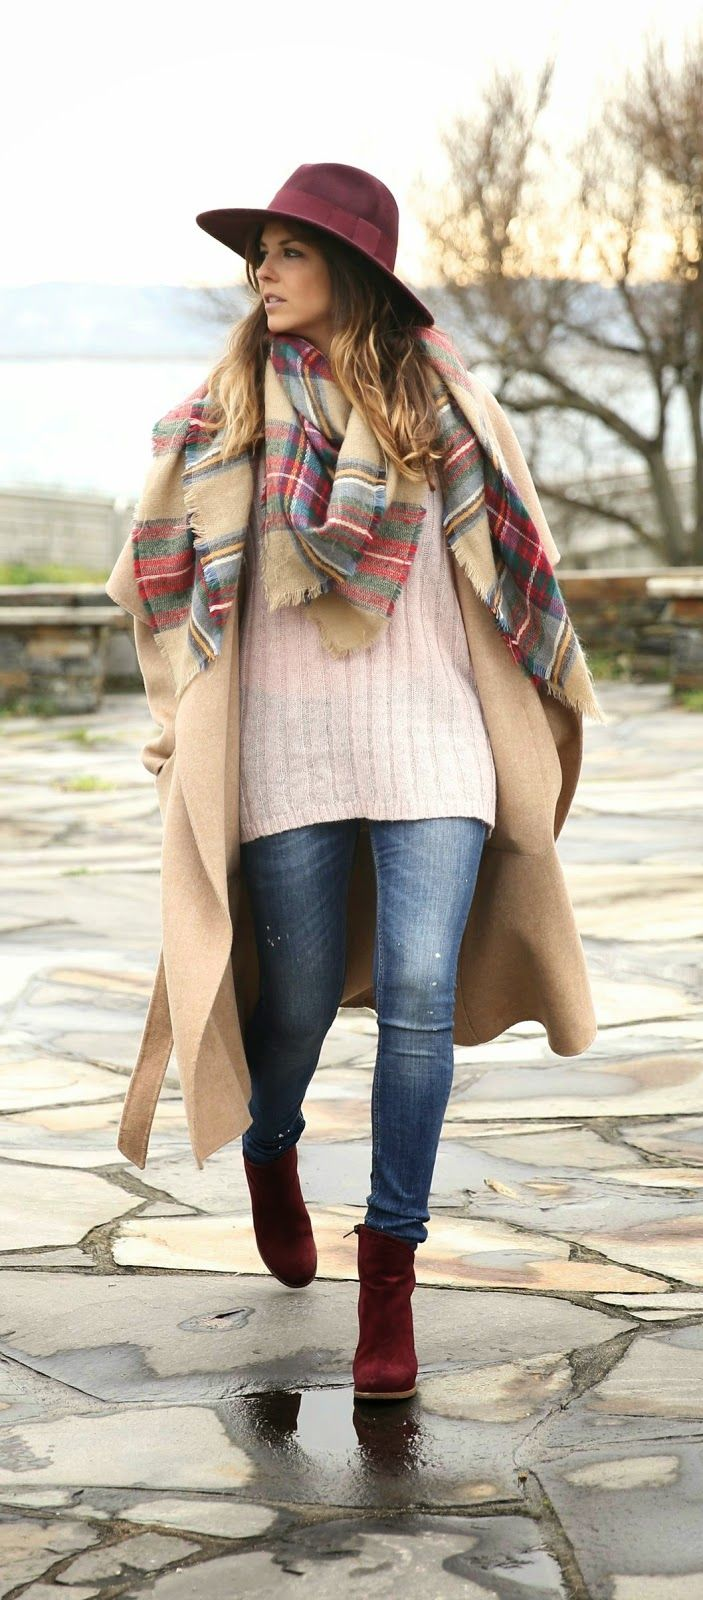 Winter Fashion 2015. Loving this Oversized Coat, Plaid Scarf & adorable Burgundy Booties. ::M::